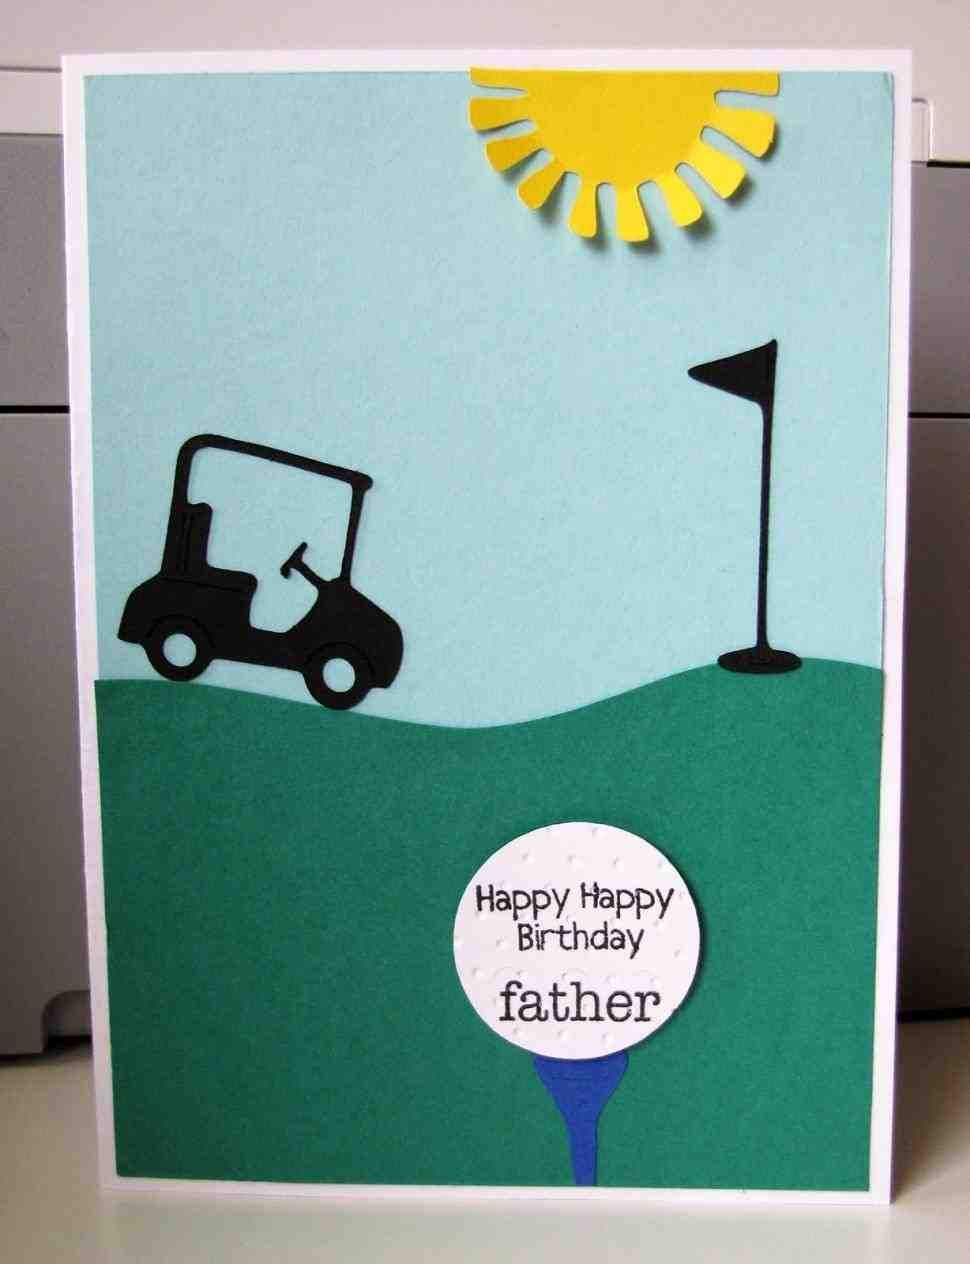 Birthday Funny Cards And Get Inspiration To Create The Card Design Of Your Dreams 15 Ideas For Pleasing E Download Free